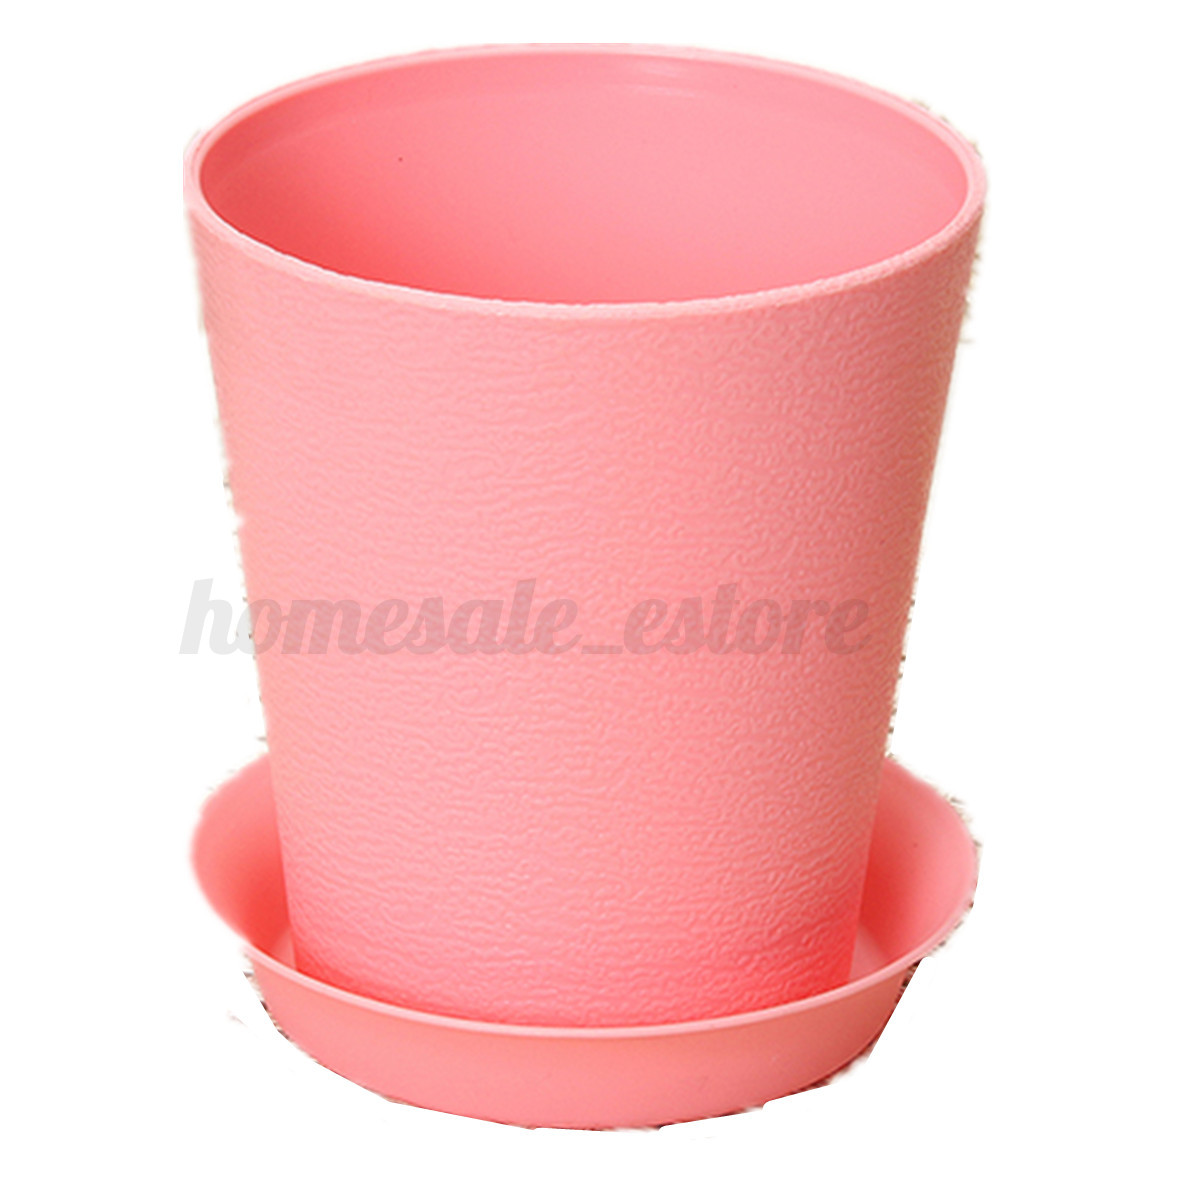 small plastic pot Oipps - uk's most reliable stockist of plastic buckets and containers, metal jars, canisters, and jerrycans no minimum order next day delivery available.